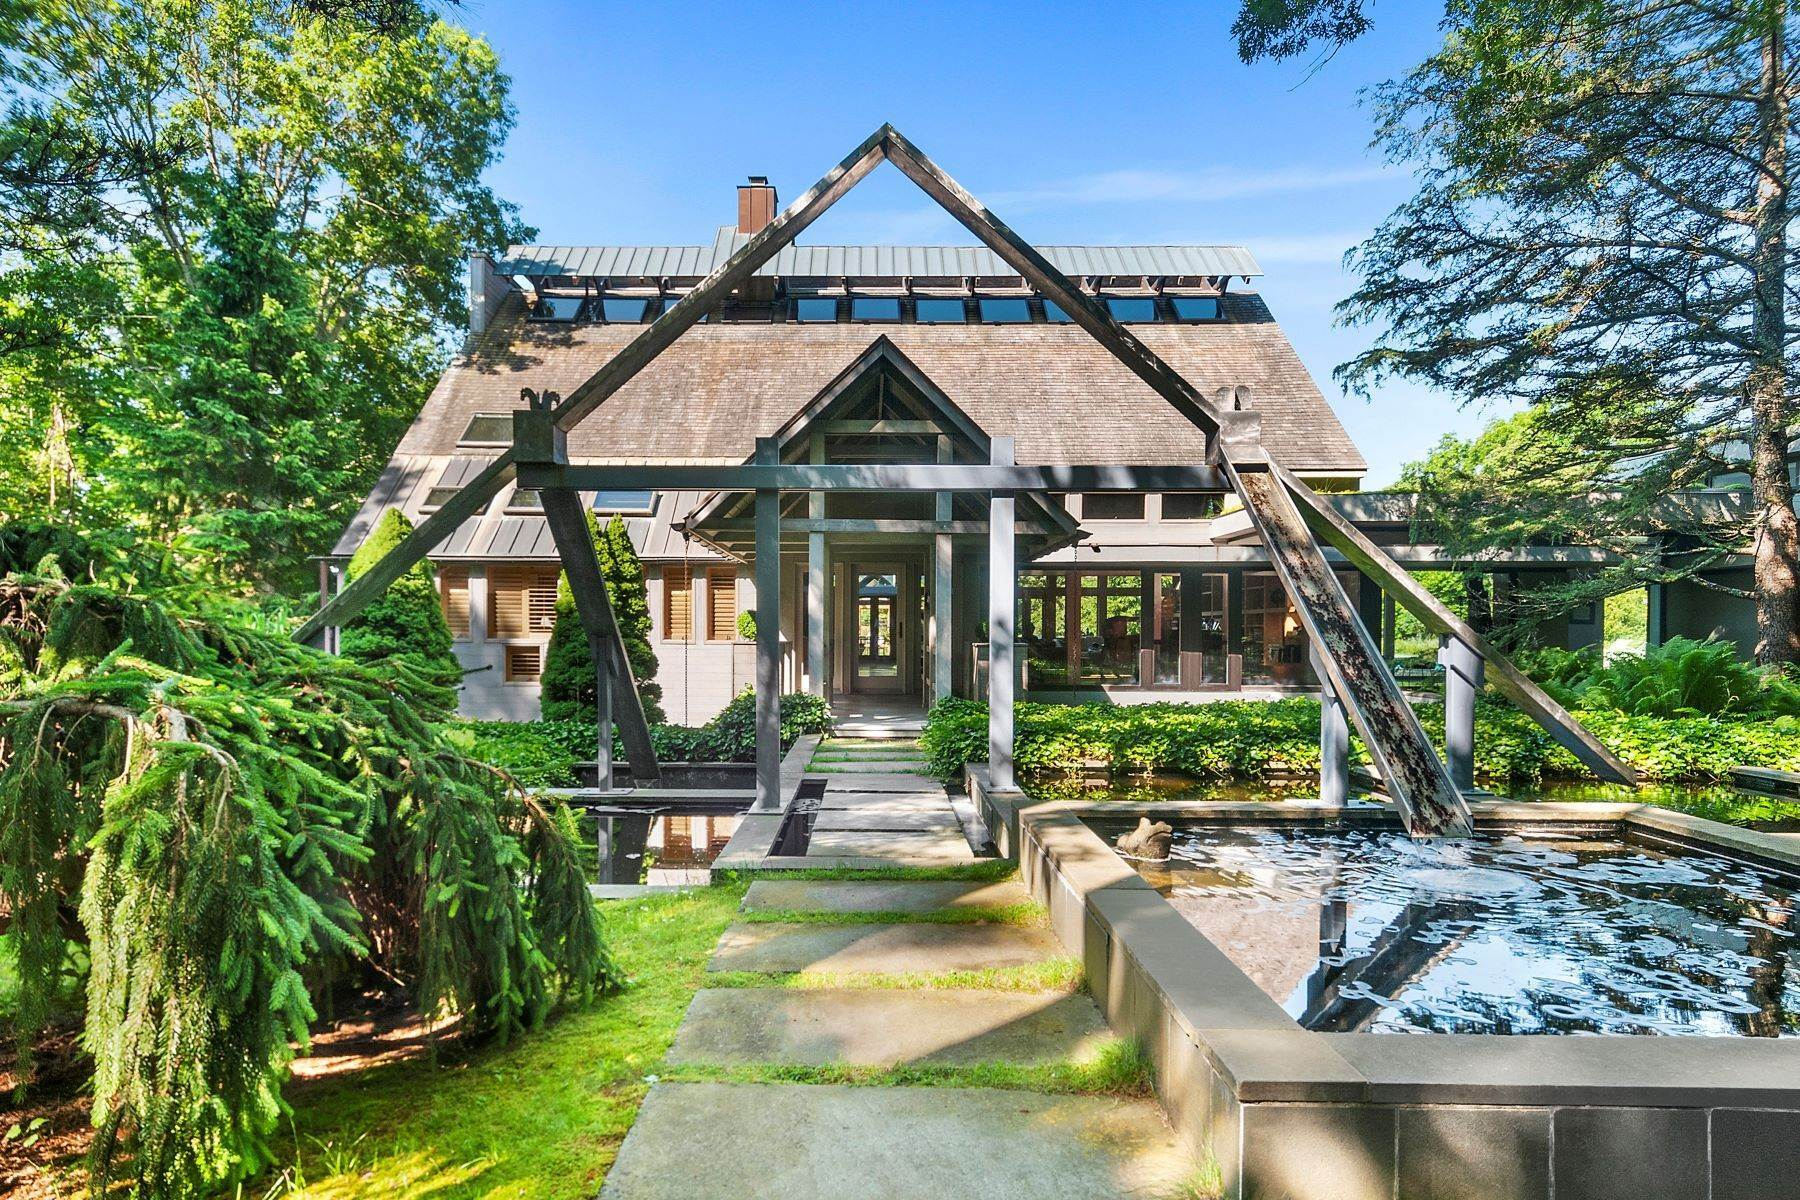 Single Family Homes for Sale at Private Oasis in Wainscott South 40 Sayres Path Wainscott, New York 11975 United States